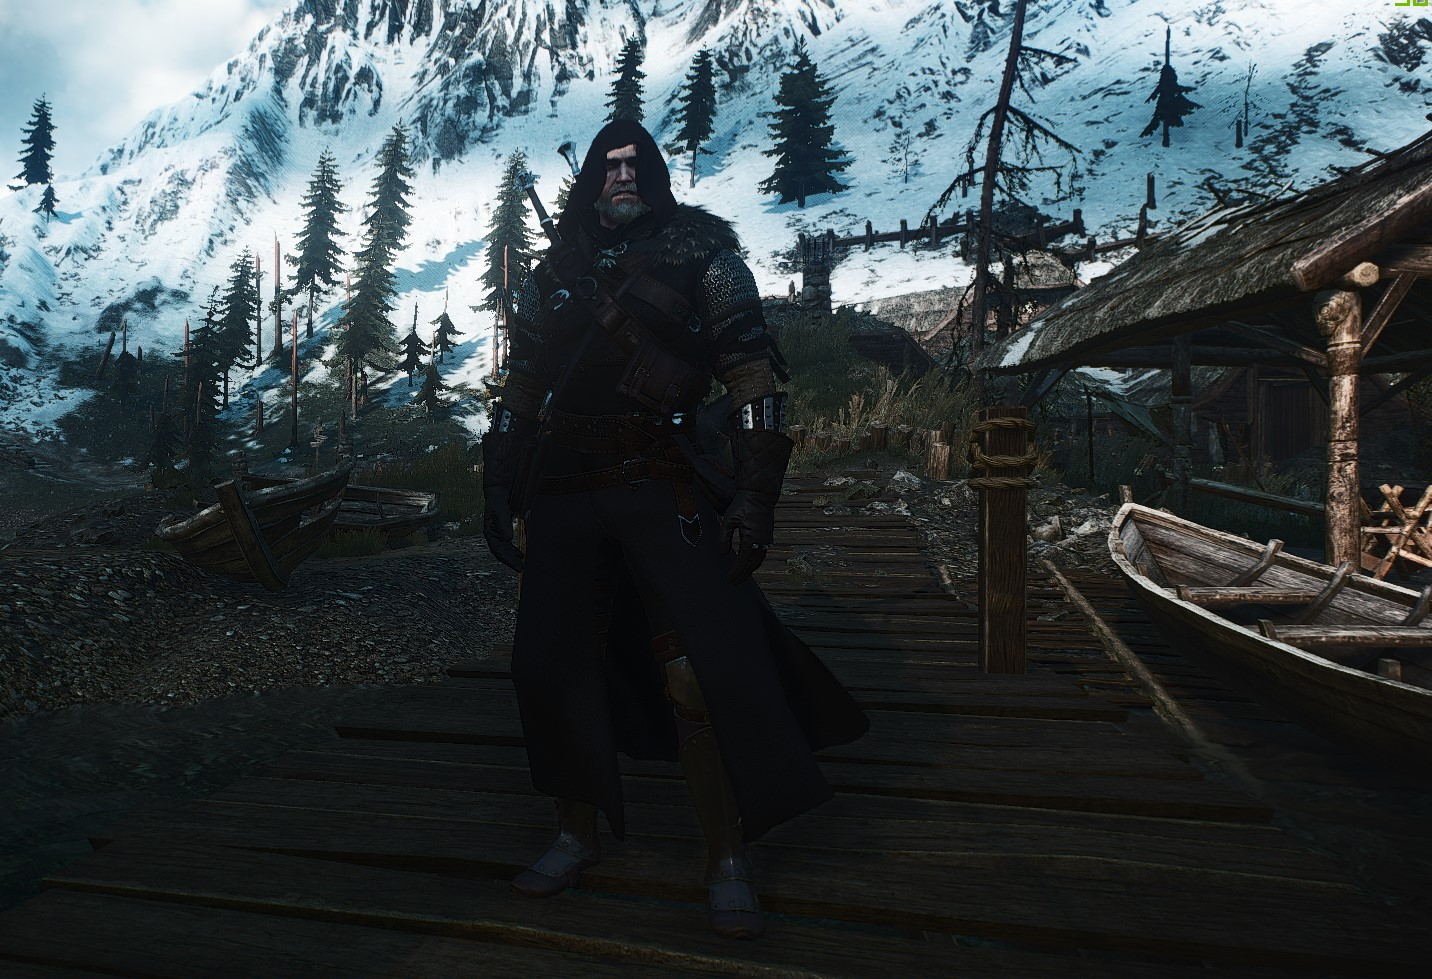 BearLovesViper для The Witcher 3: Wild Hunt - Скриншот 2